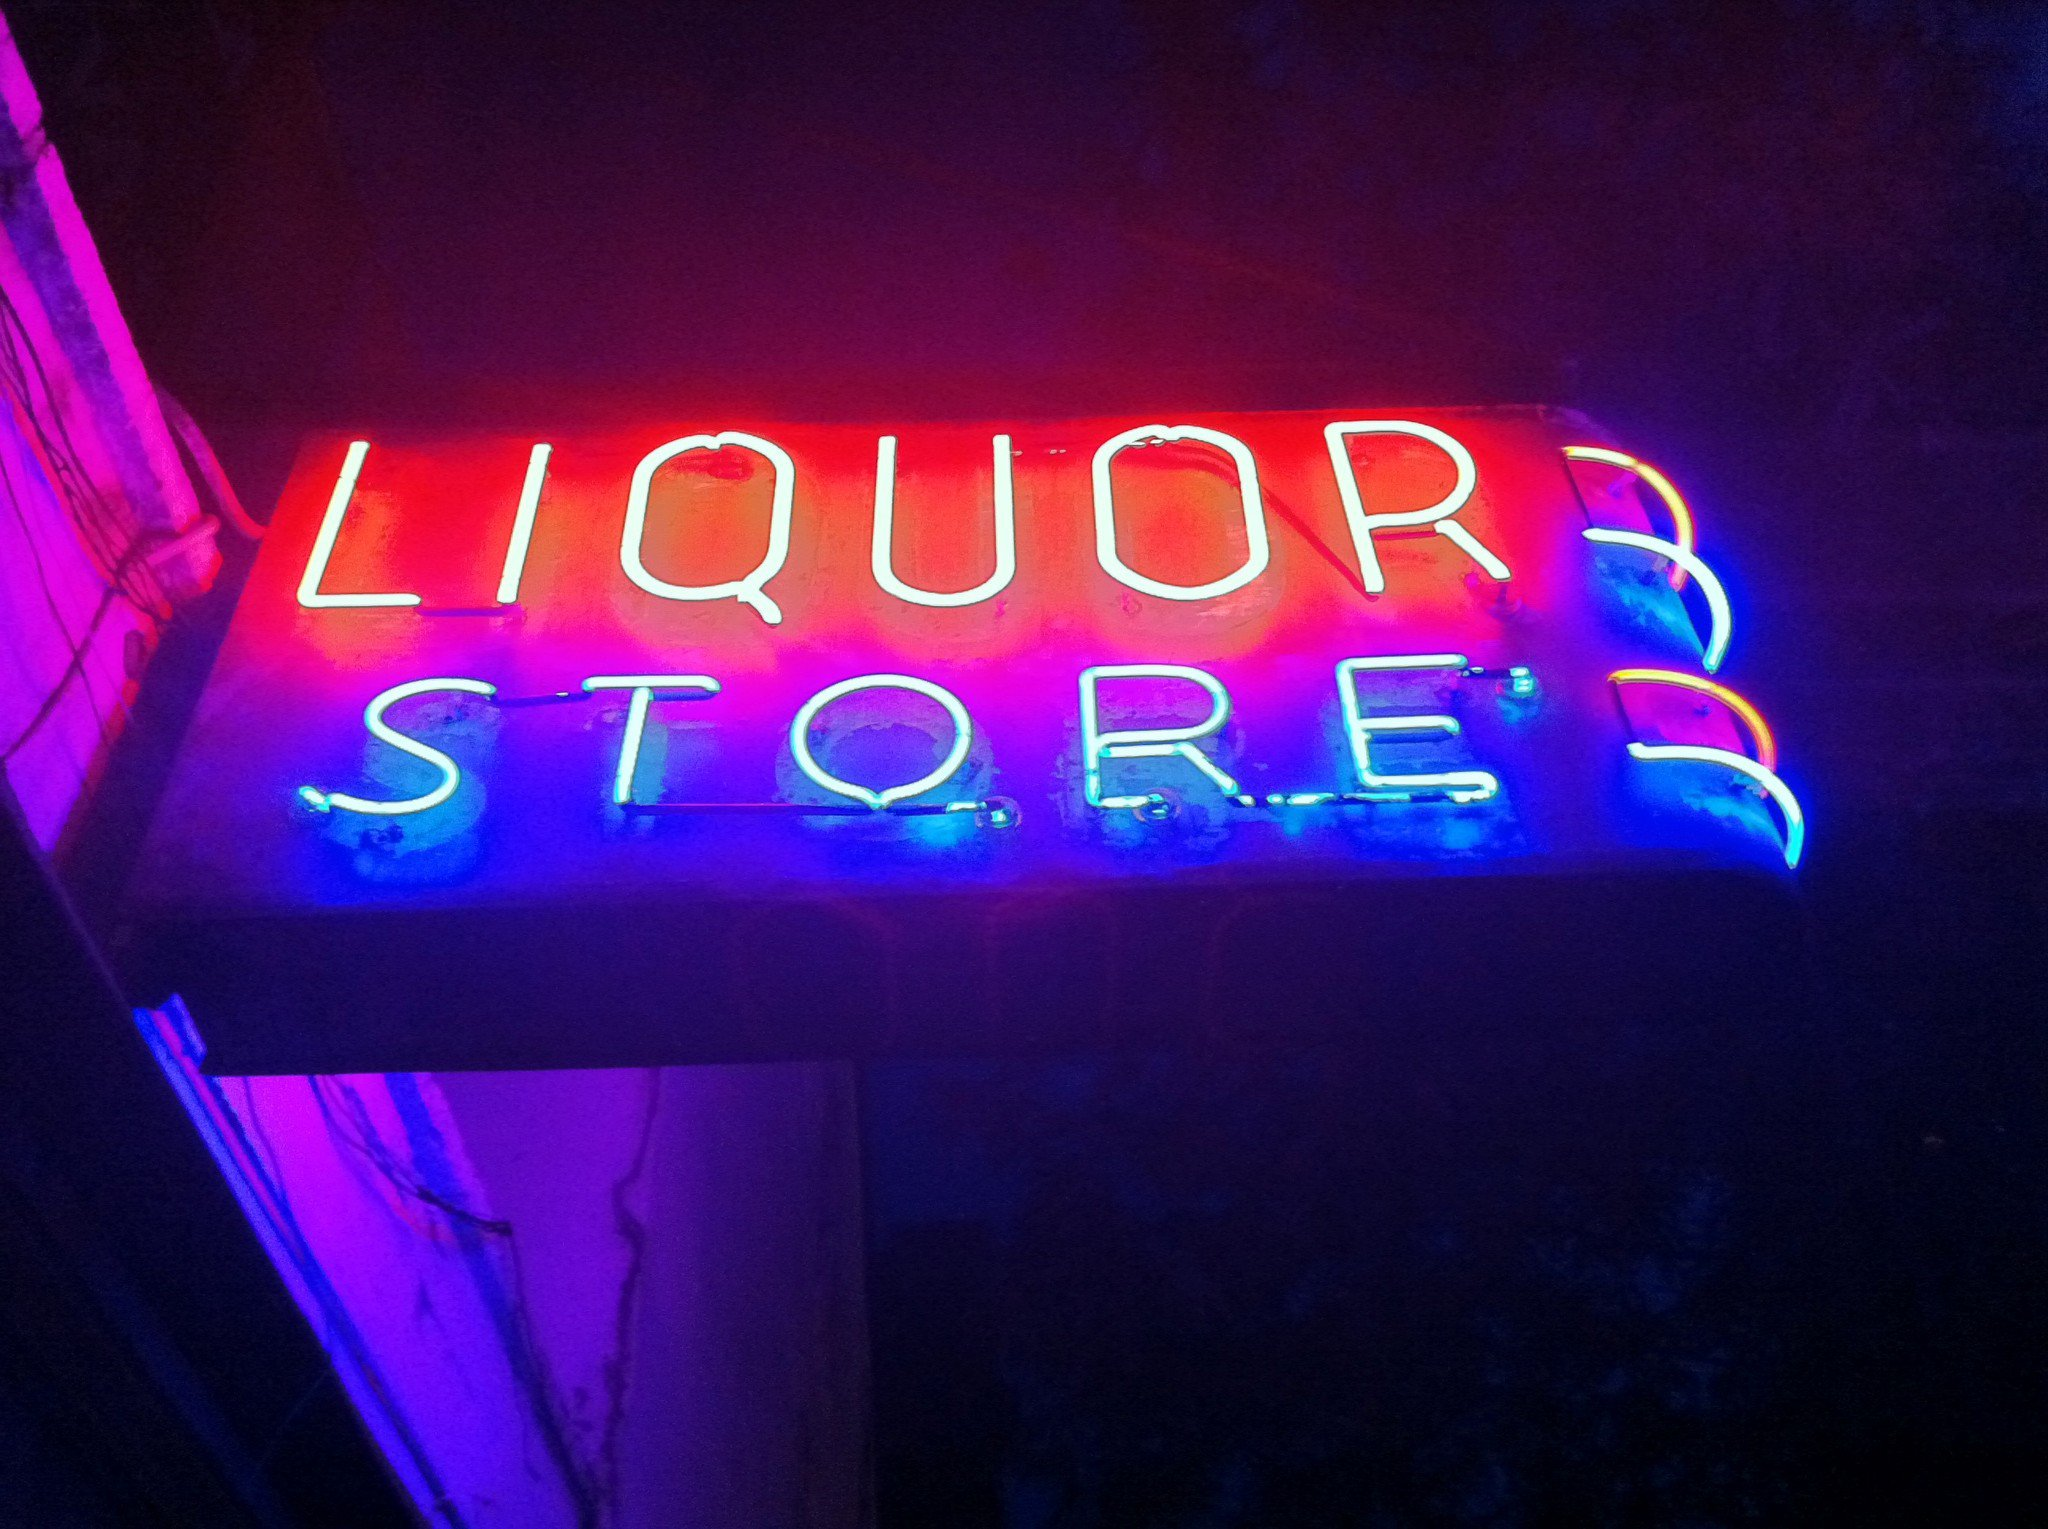 Main Photo: Liquor store with Property - Confidential Listing: Business with Property for sale